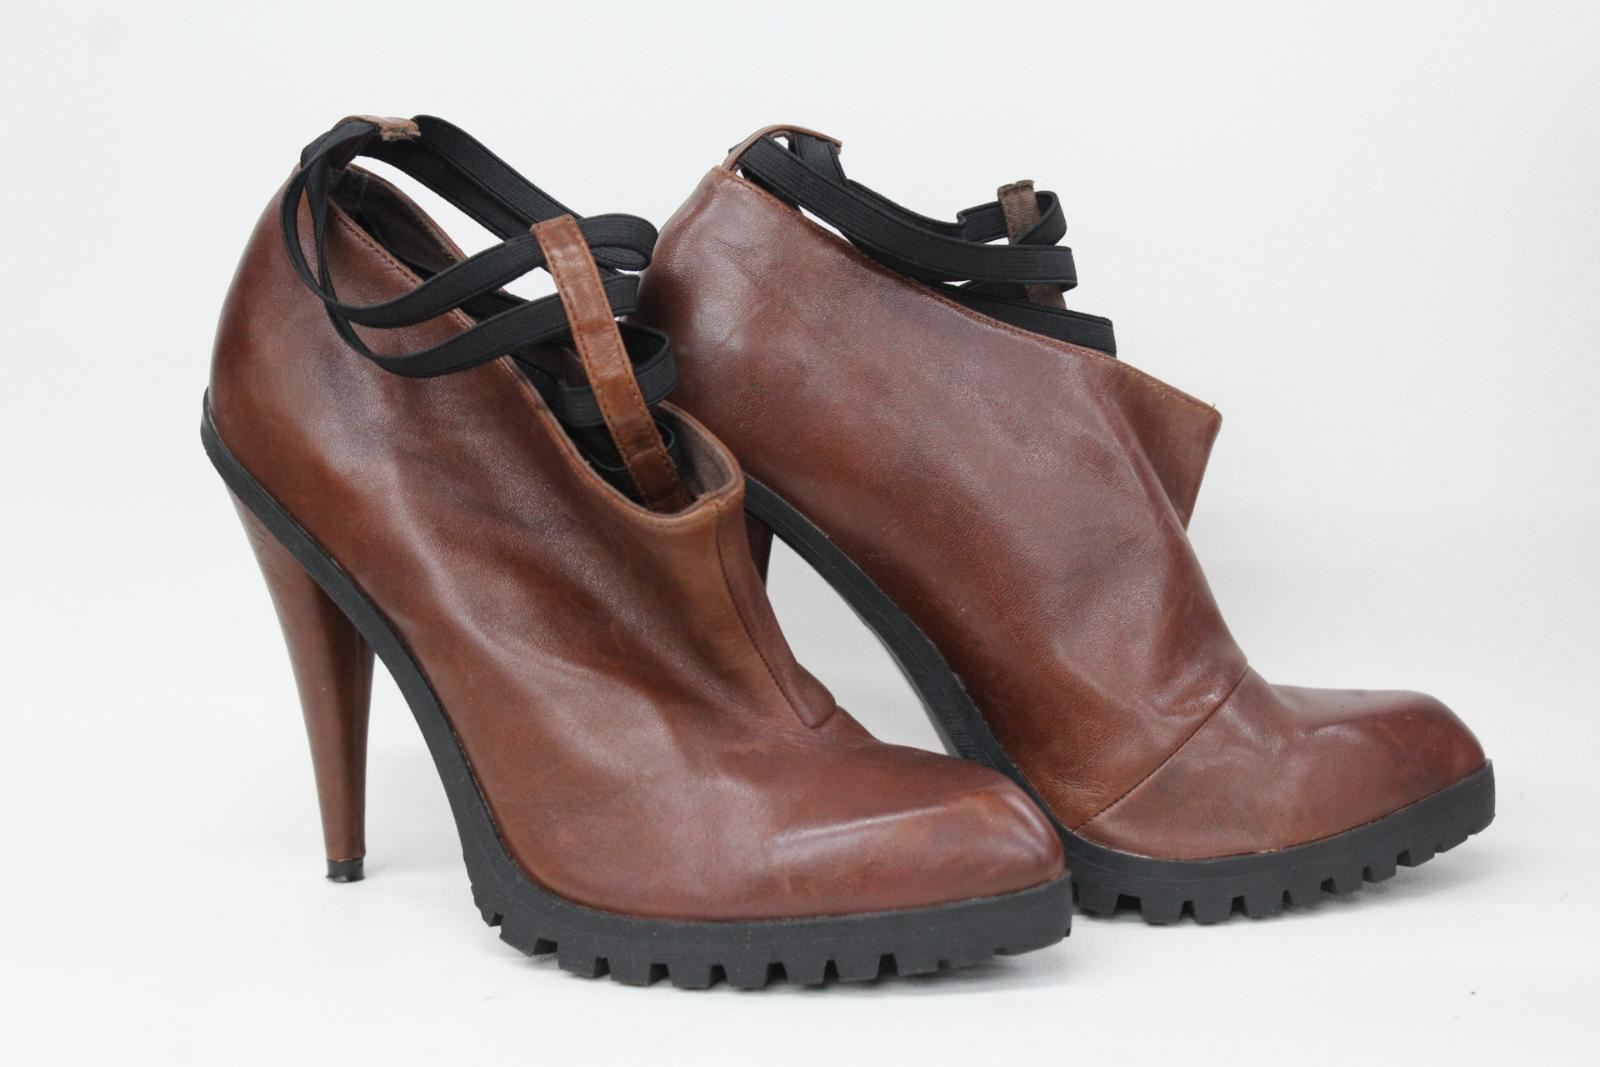 KG BY KURT GEIGER Ladies Brown Leather Elastic Ankle shoes Boots UK7 EU40